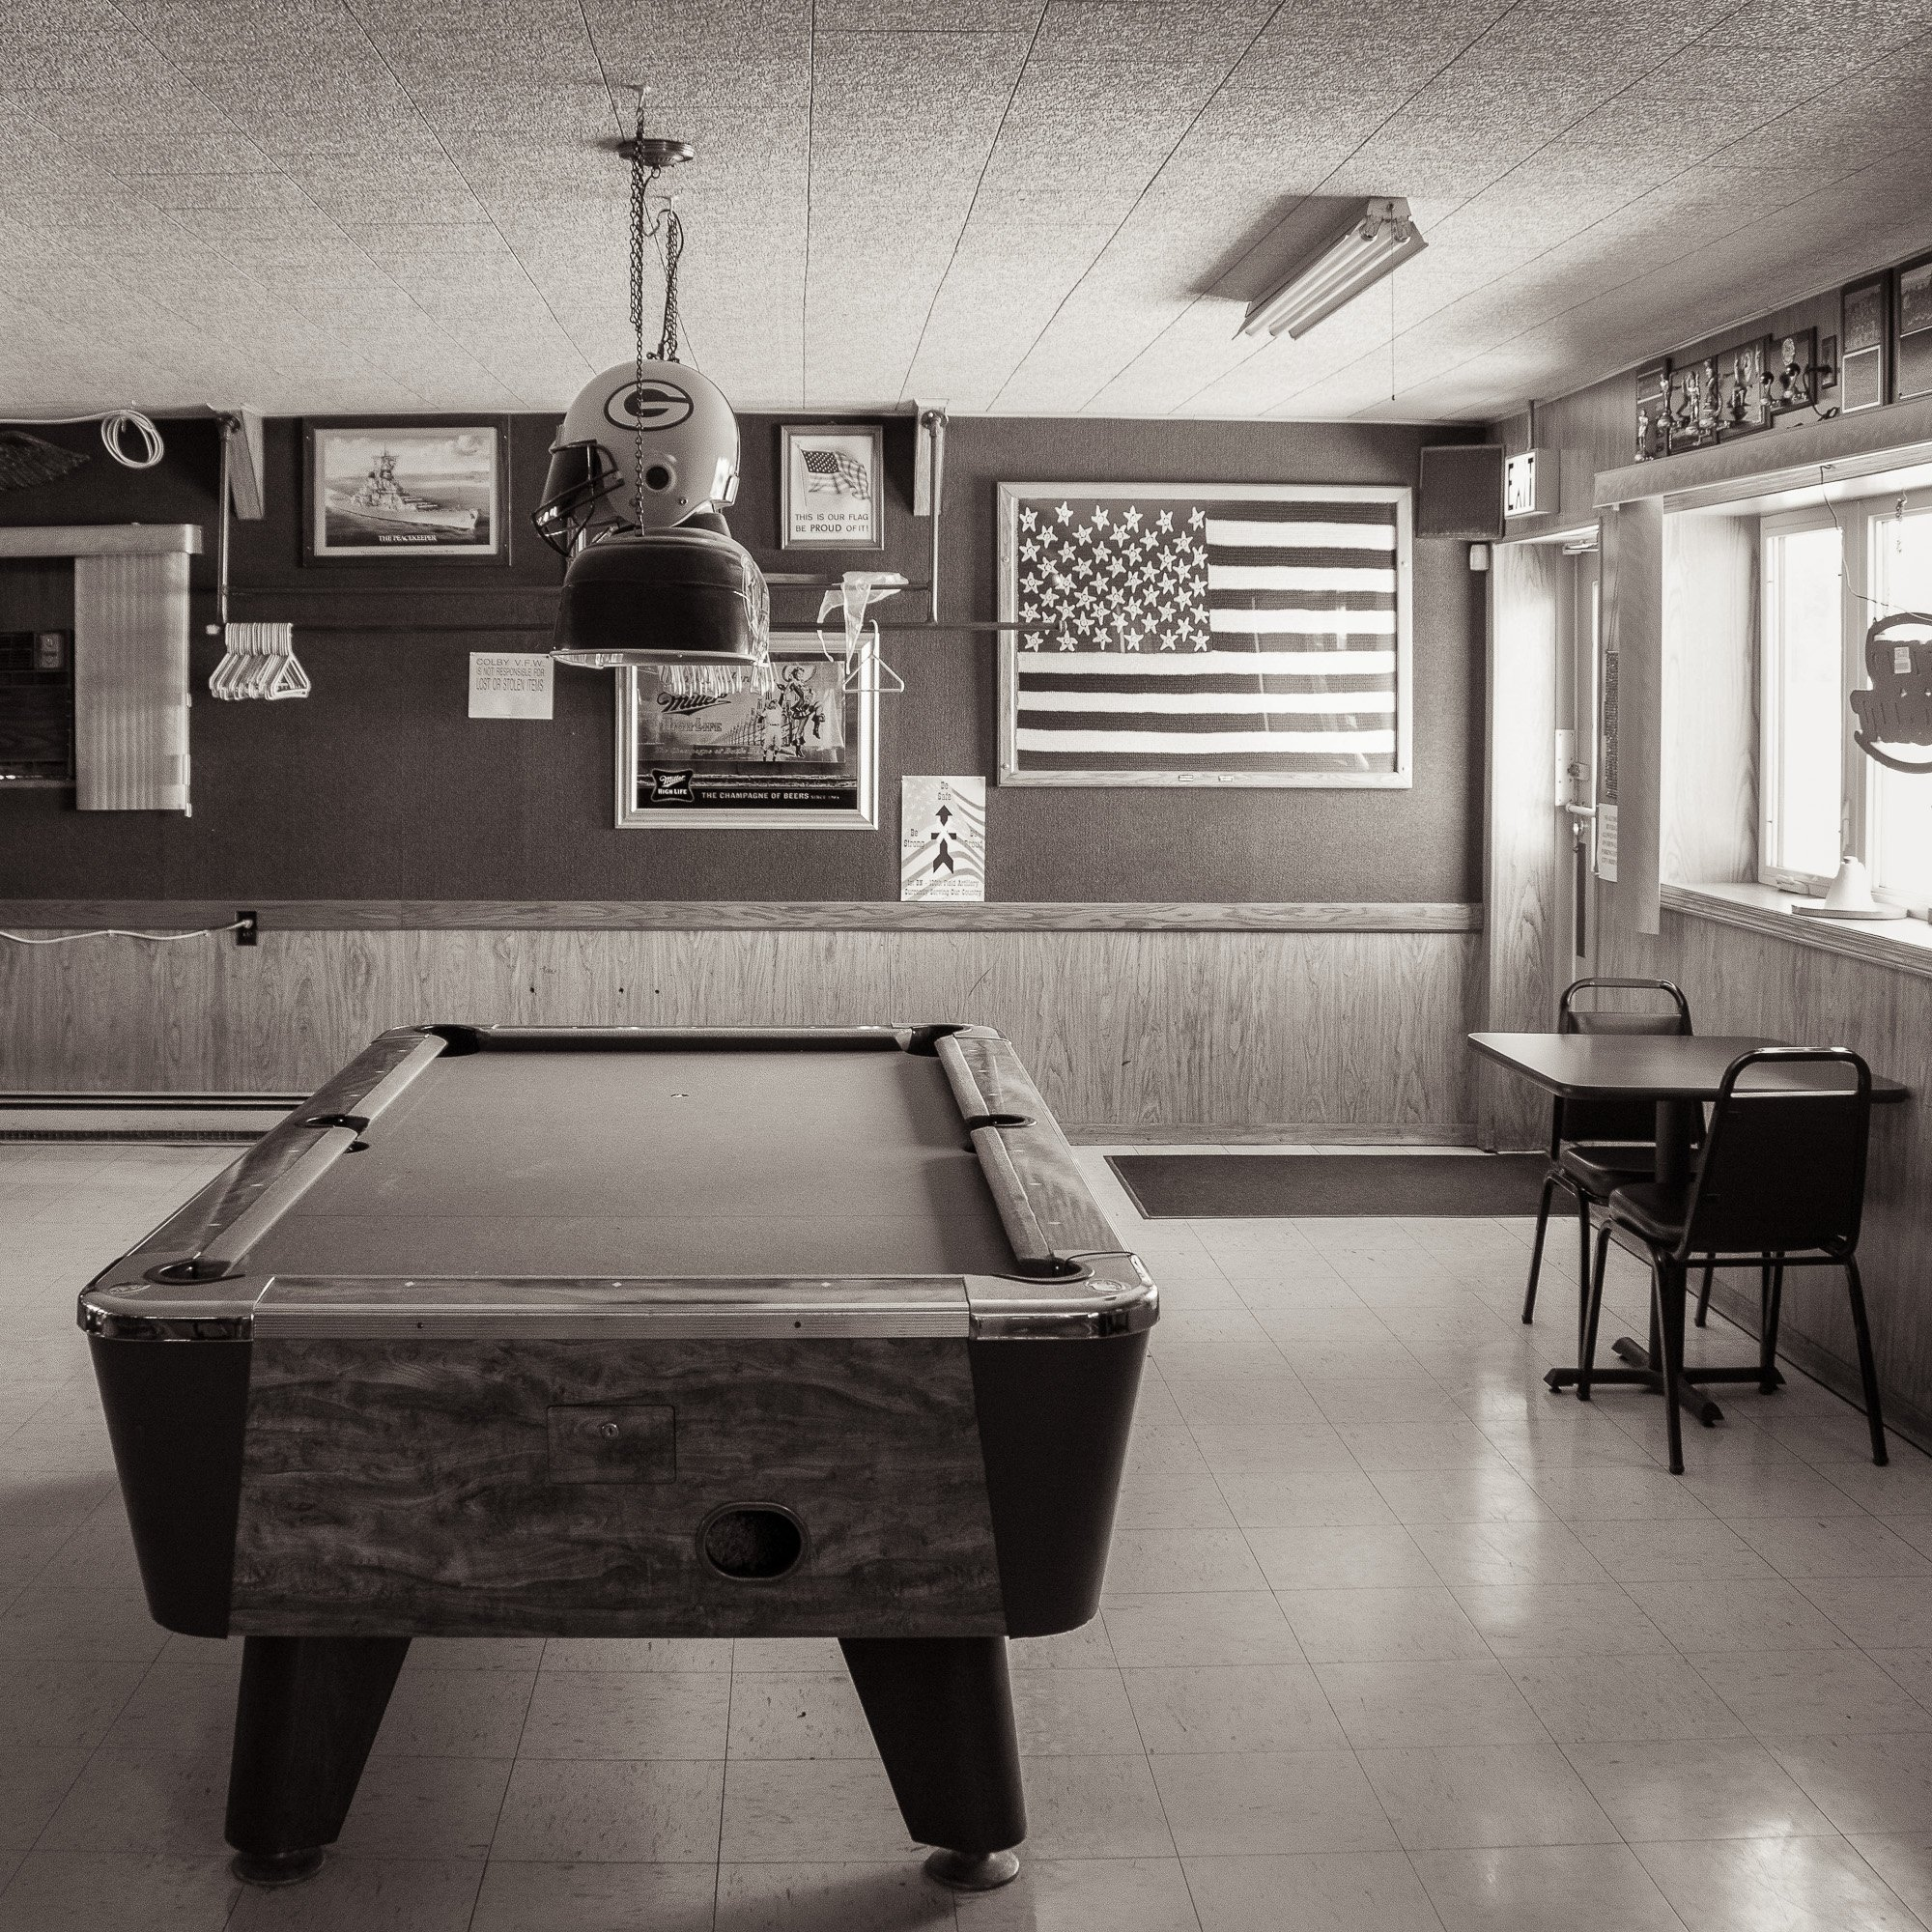 VFW Post 2227 Colby, Wisconsin